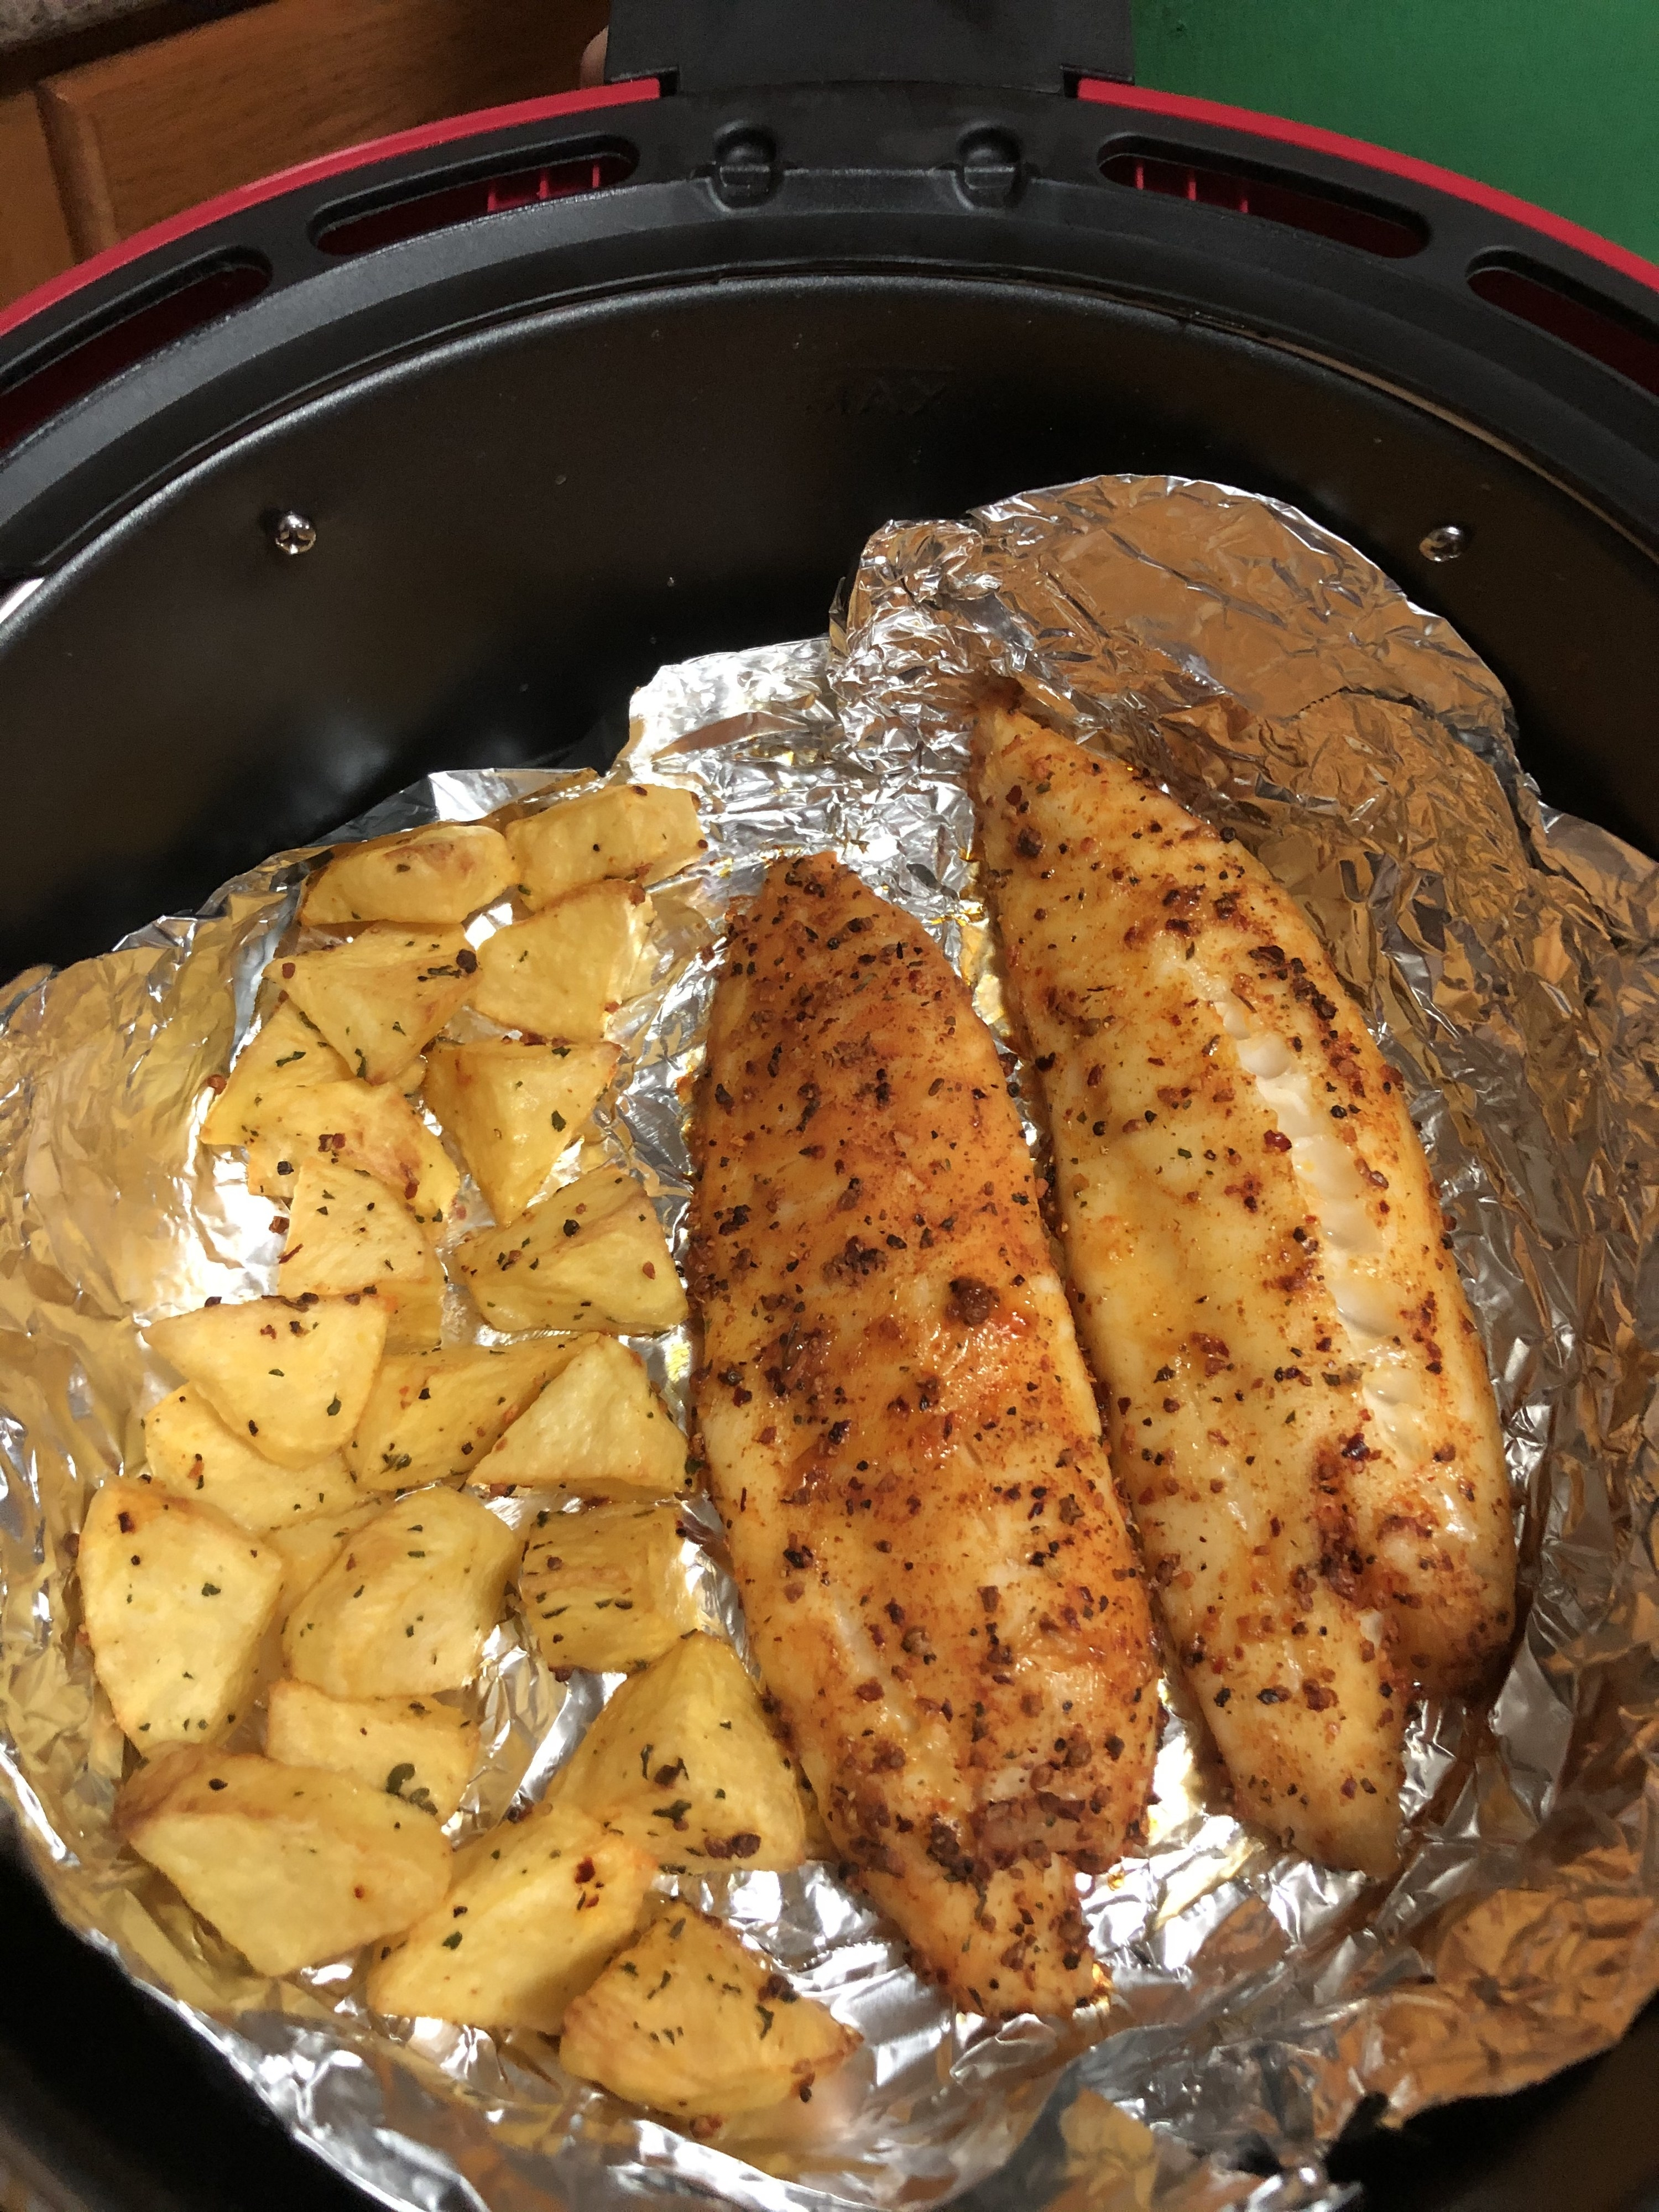 Tilapia fillets and potatoes that have been cooked inside the air fryer